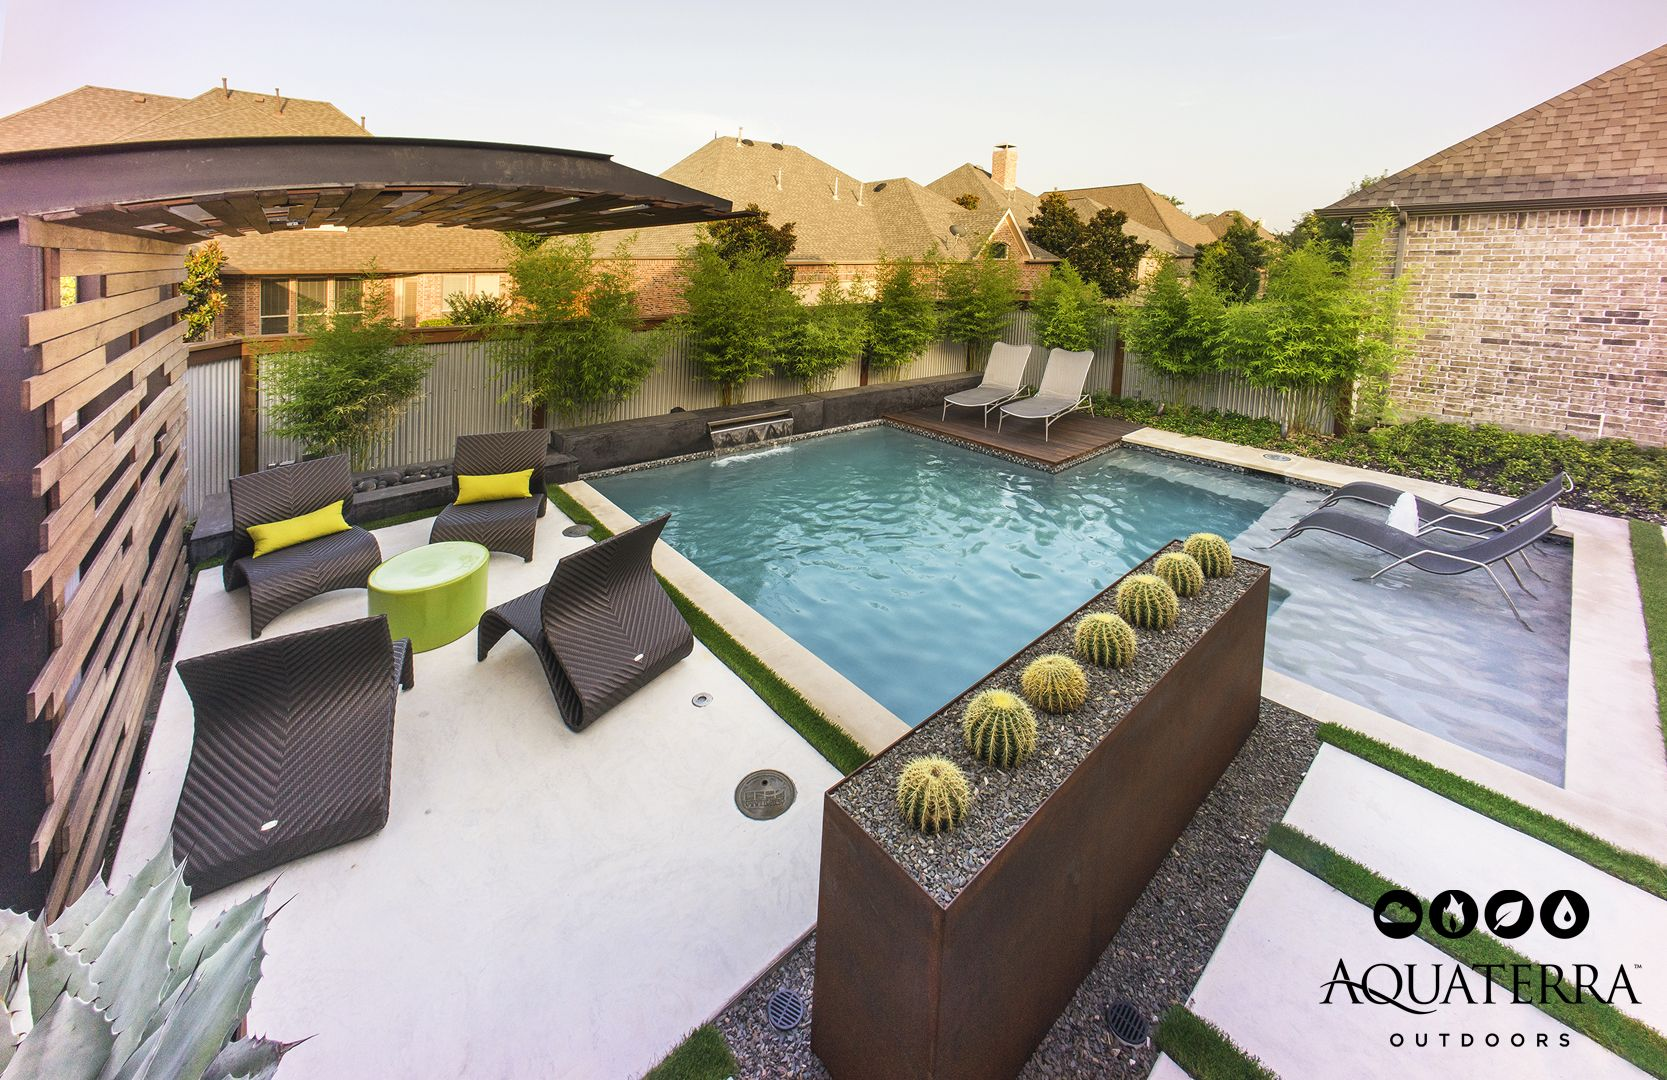 our client wanted us to transform their typical suburban backyard